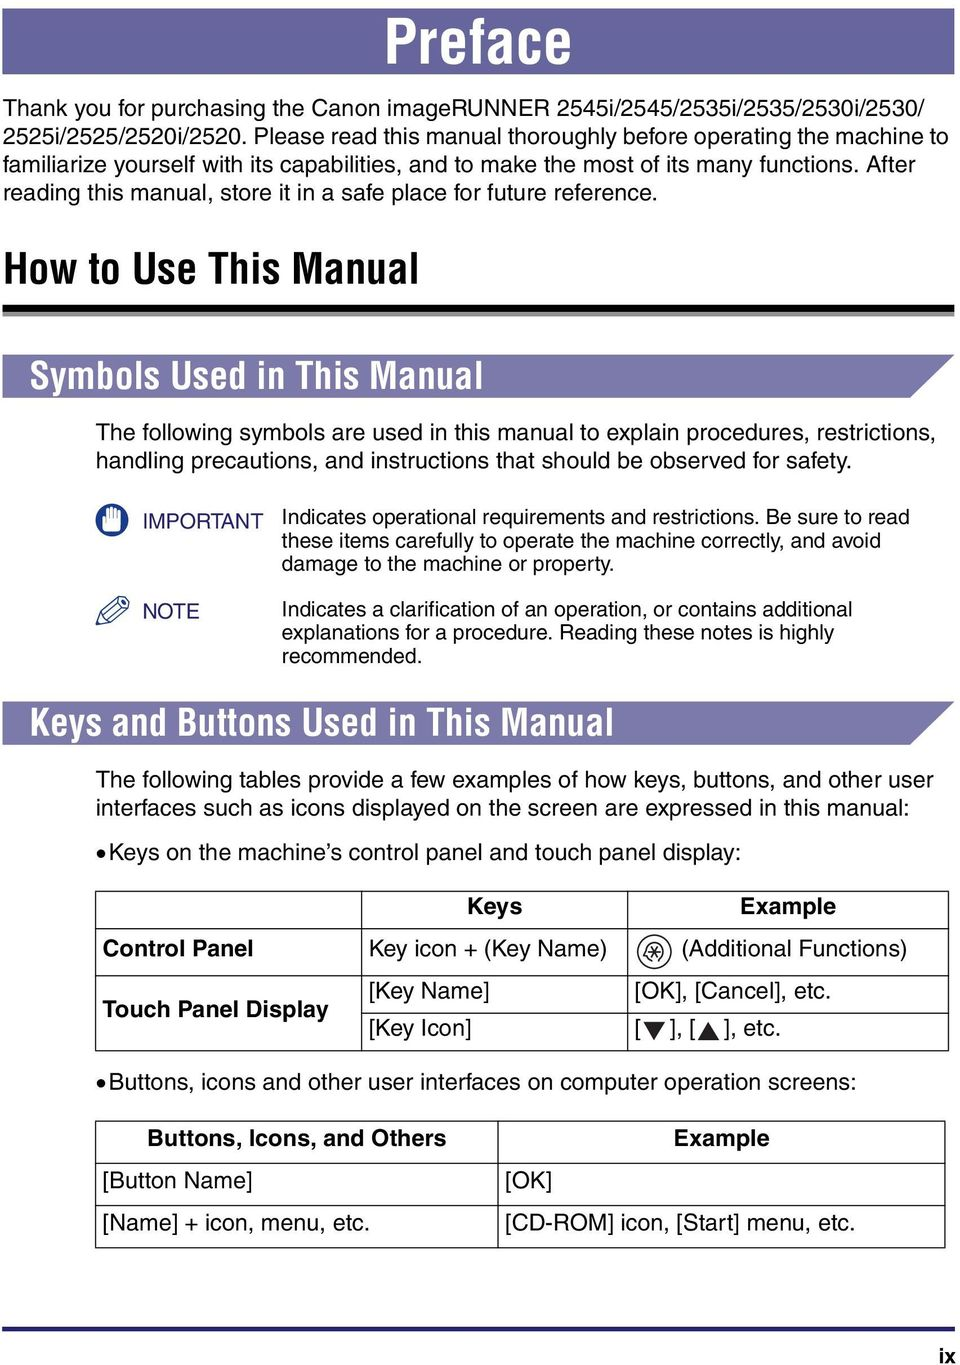 After reading this manual, store it in a safe place for future reference.